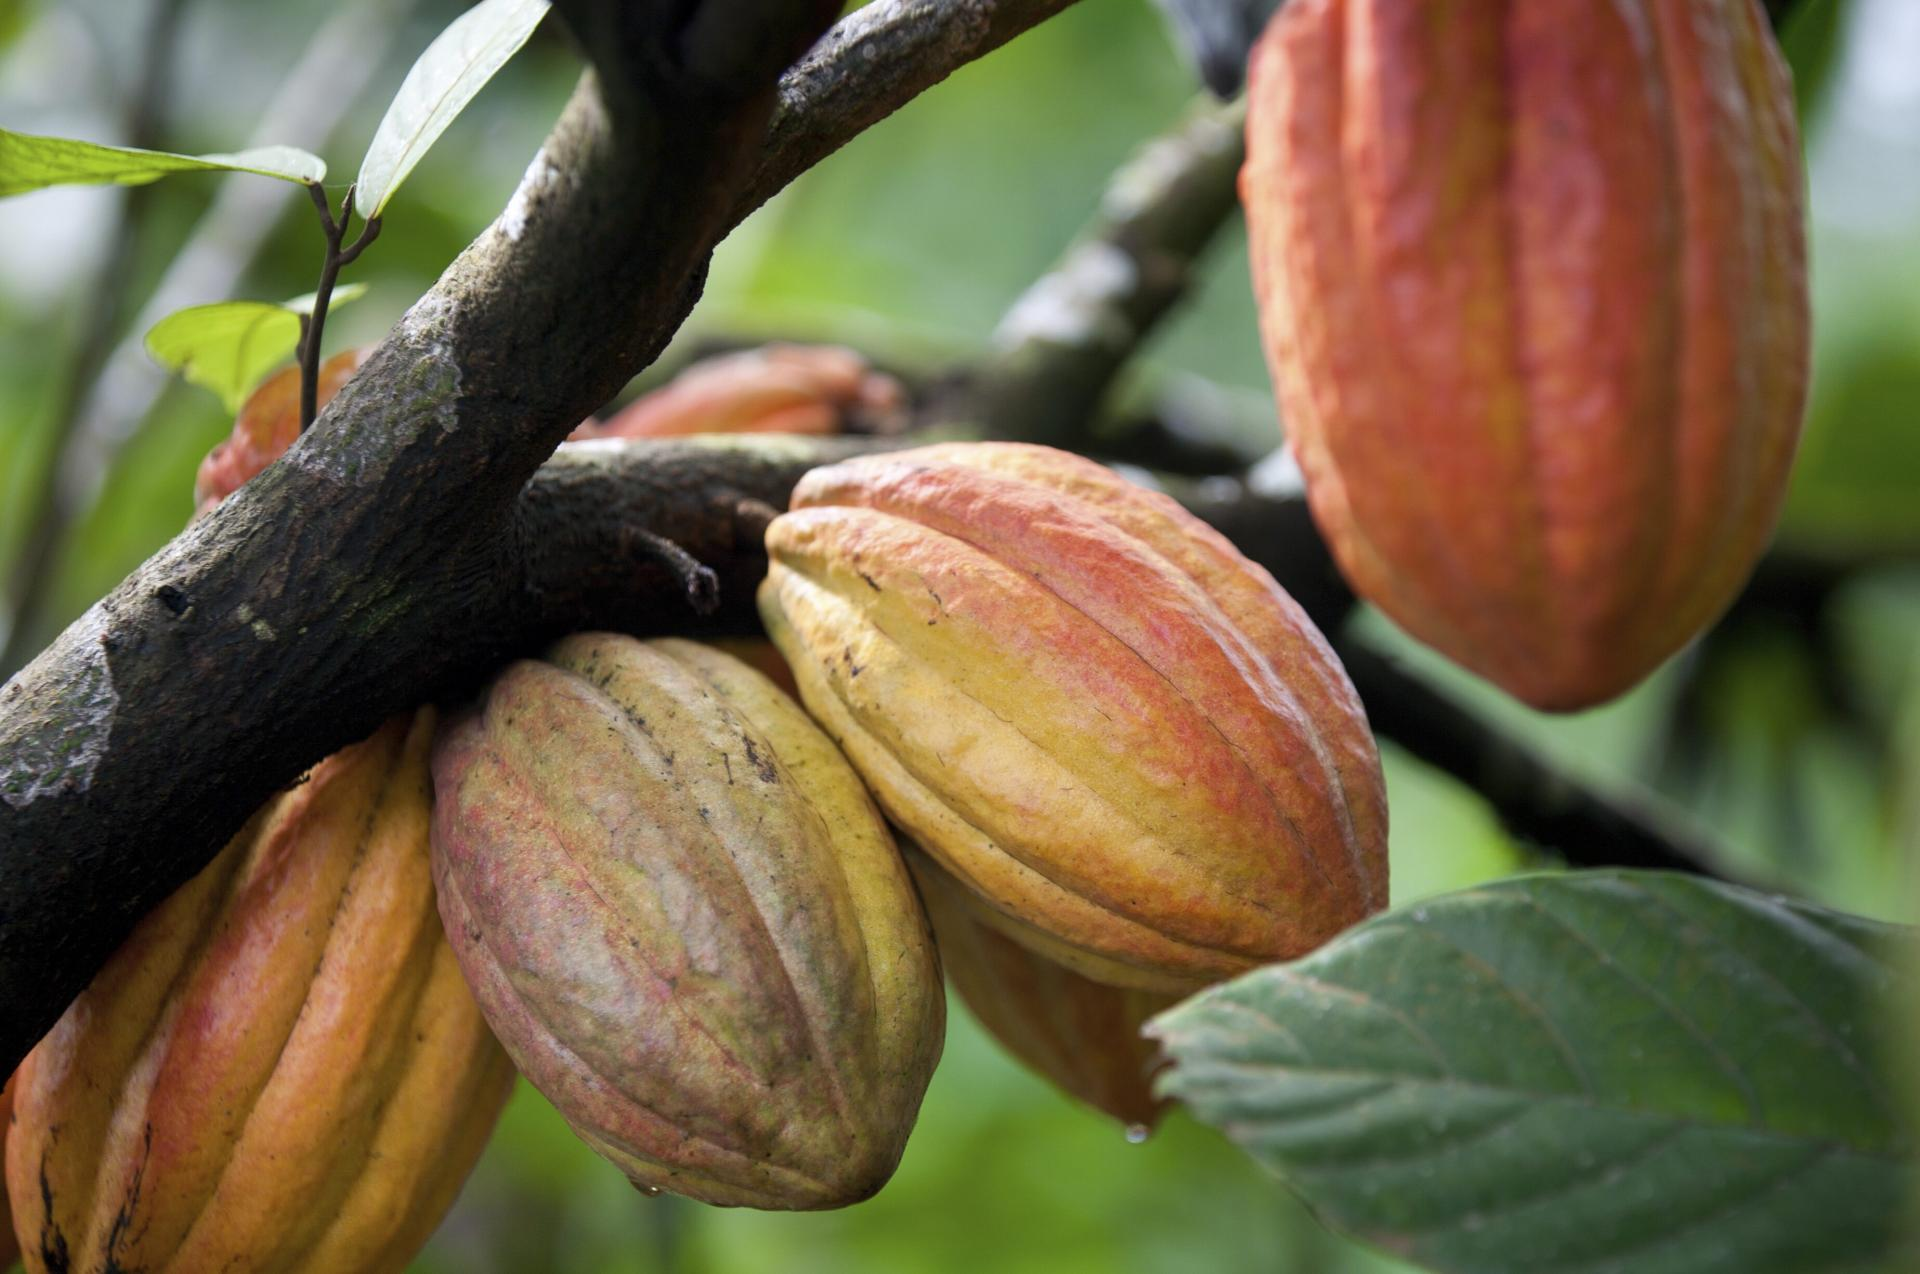 Sustainable Cocoa is one of the four pillars of Barry Callebaut's corporate strategy, alongside Expansion, Innovation, and Cost Leadership.